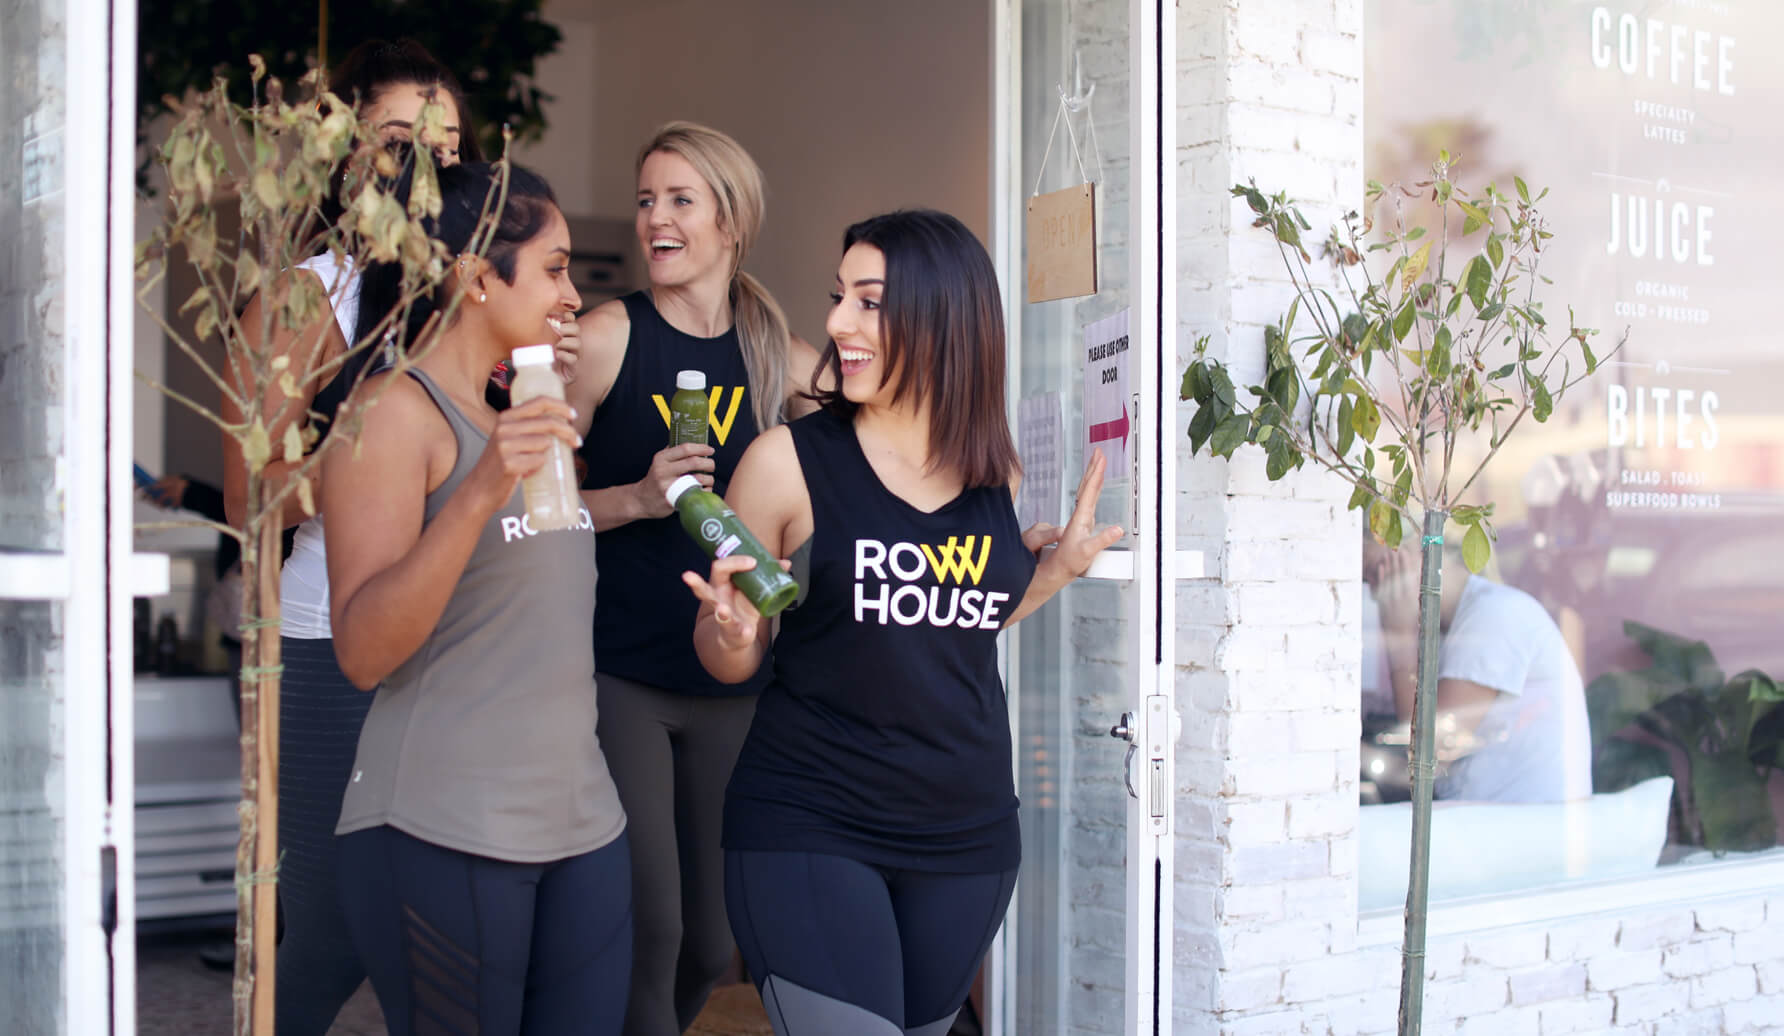 Row House Corporate Partnerships